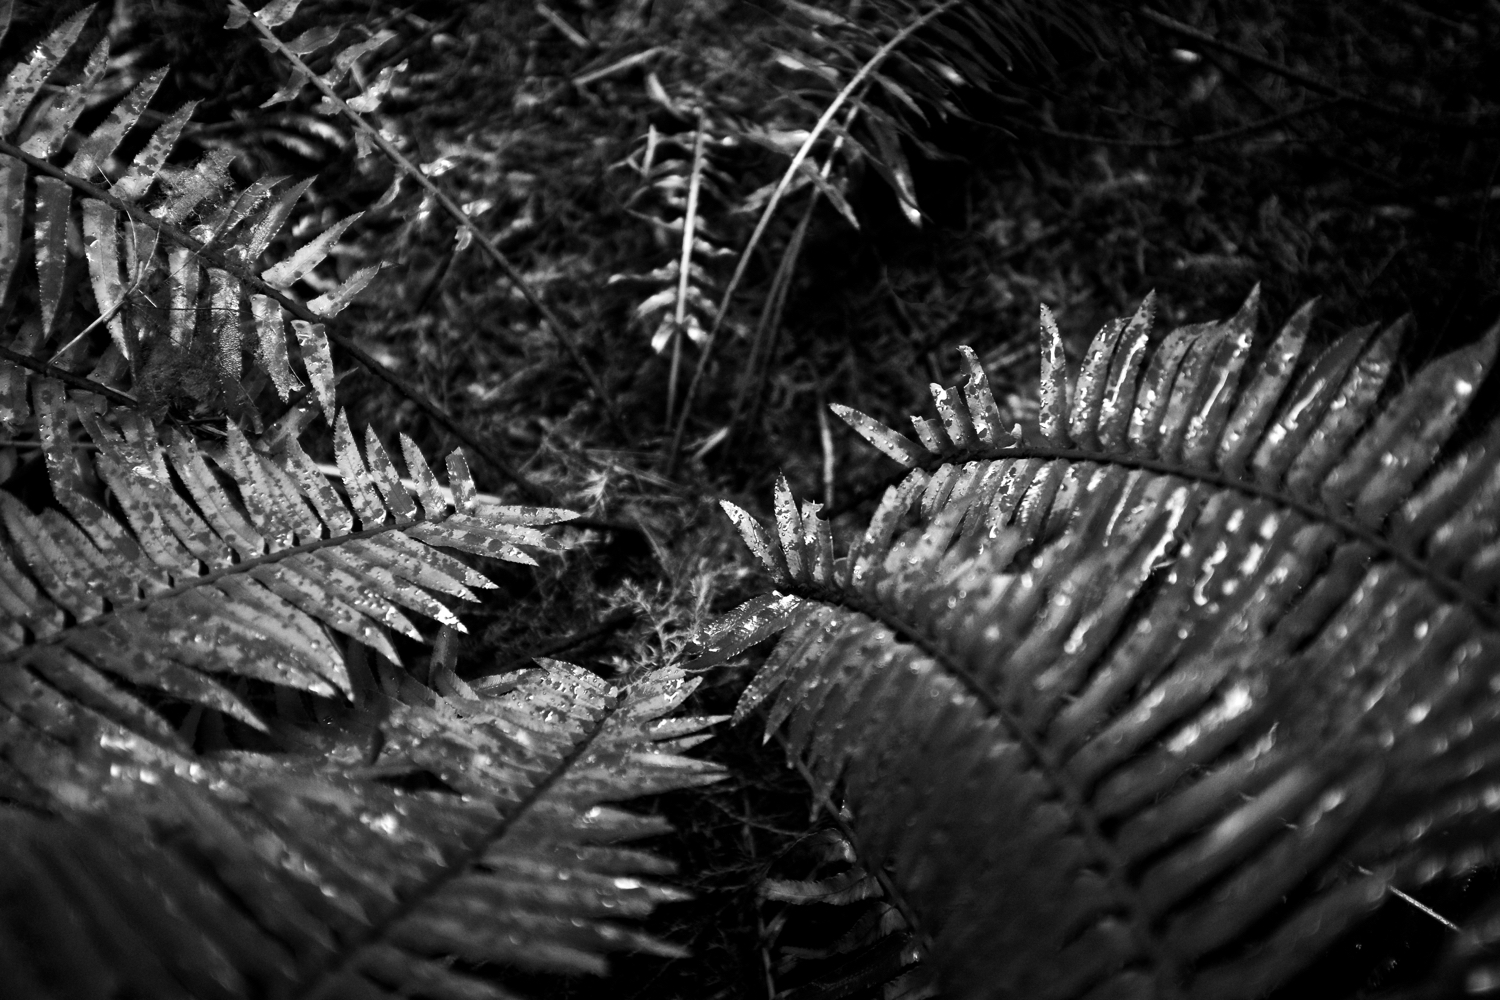 Sawtooth Ferns pointing to the forest floor.  Click image to enlarge.